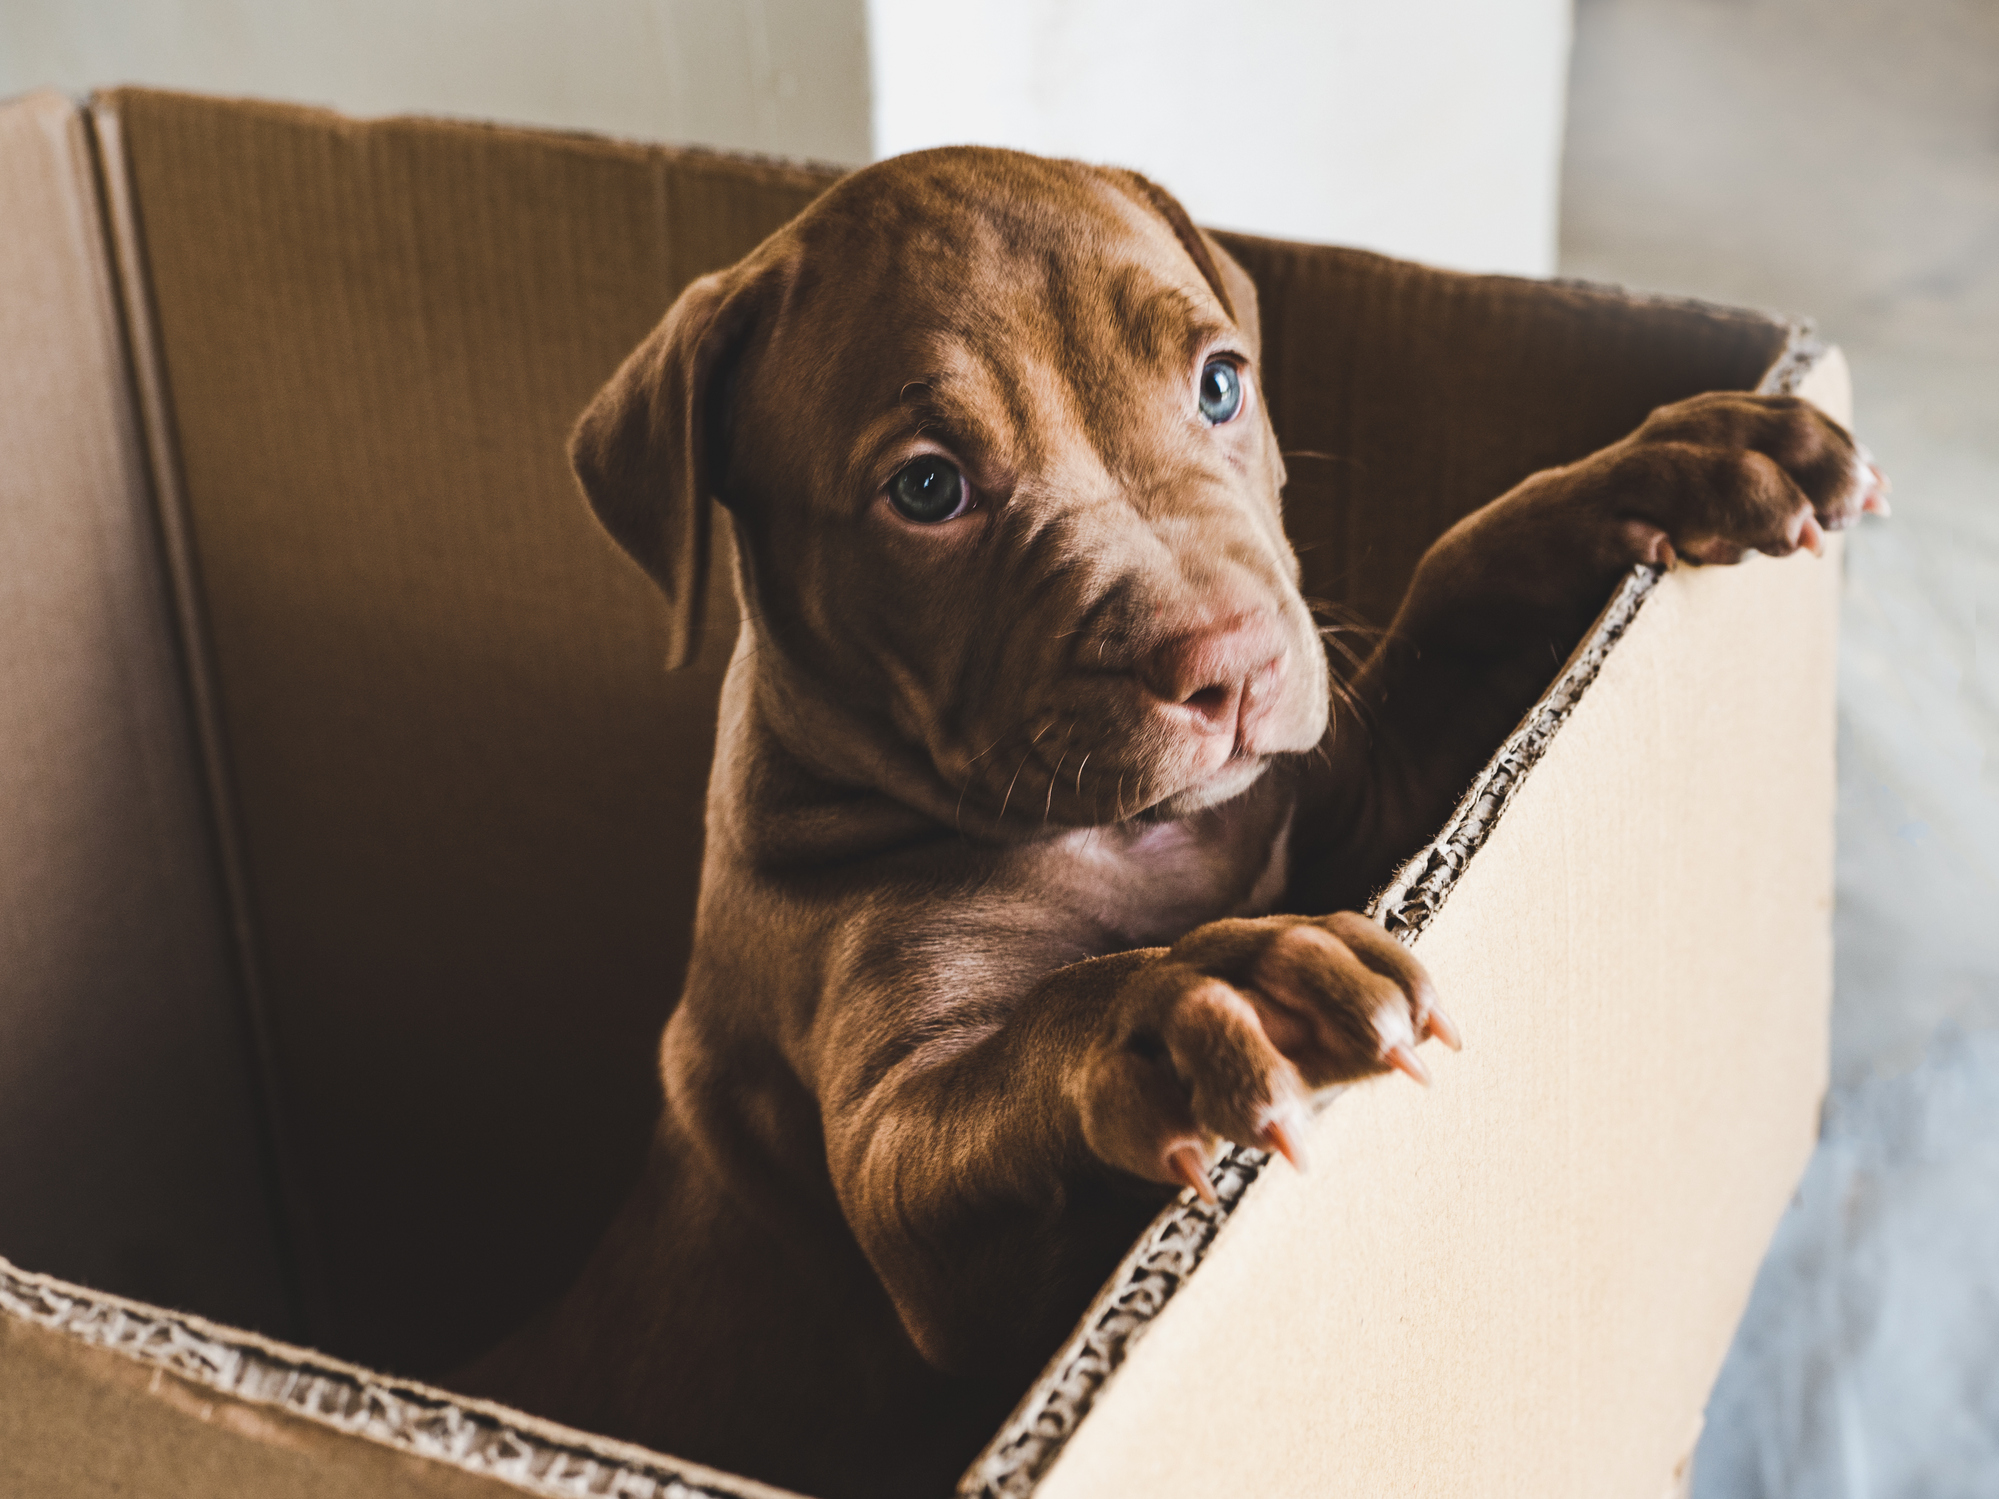 A puppy standing up on the side of a cardboard box